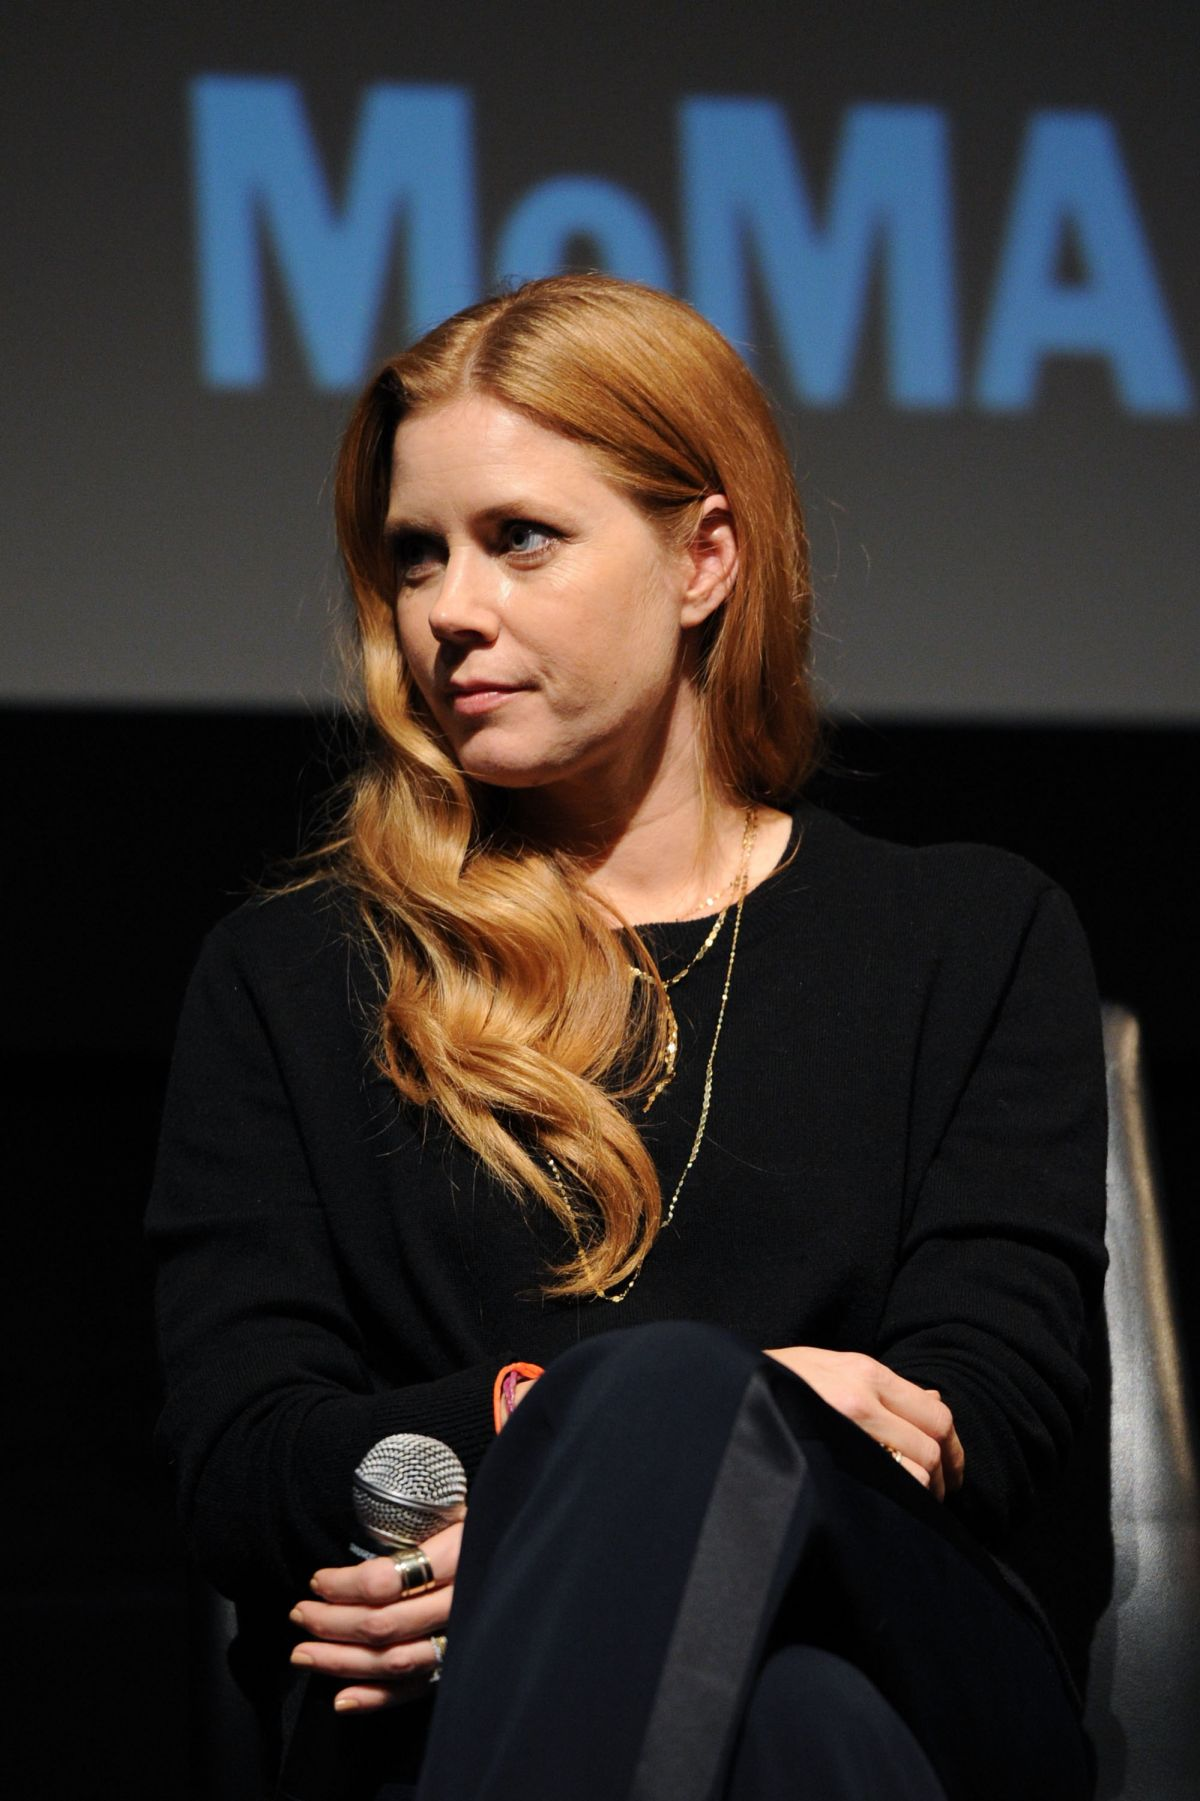 AMY ADAMS at MoMa's Contenders Screening of 'Arrival' in New ...